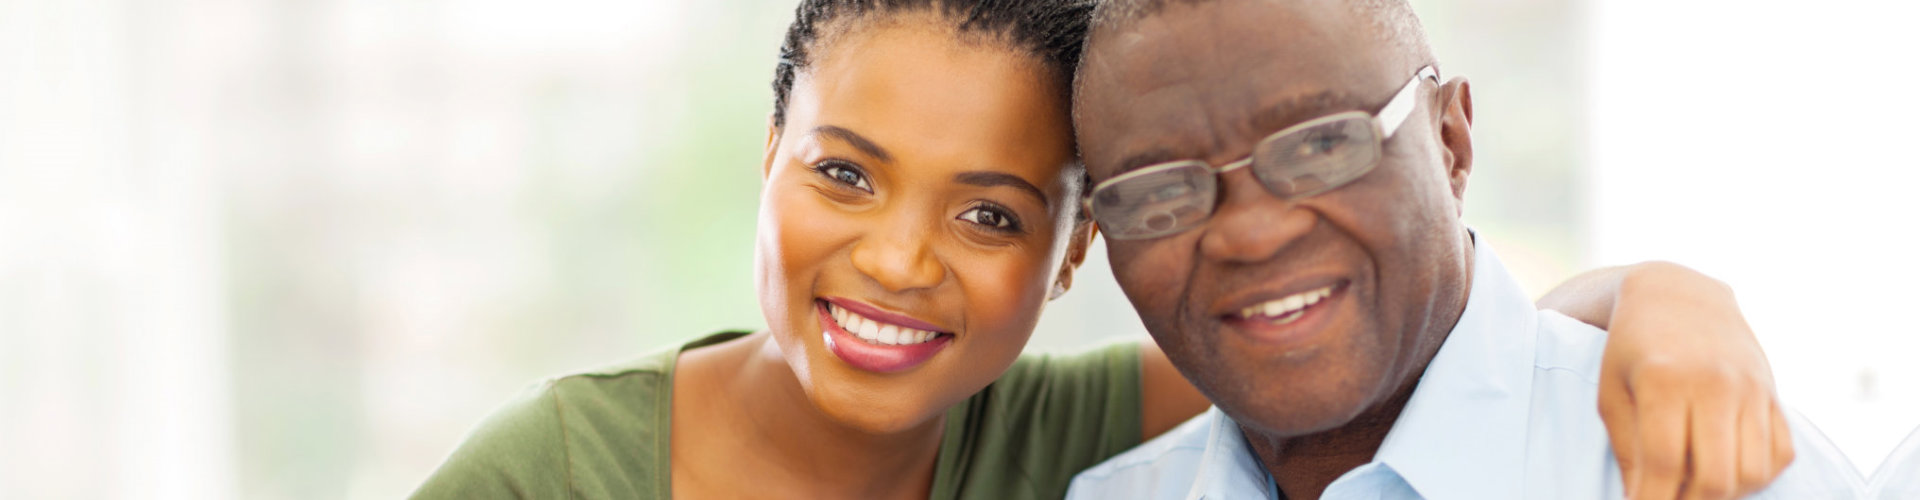 caregiver and old man smiling